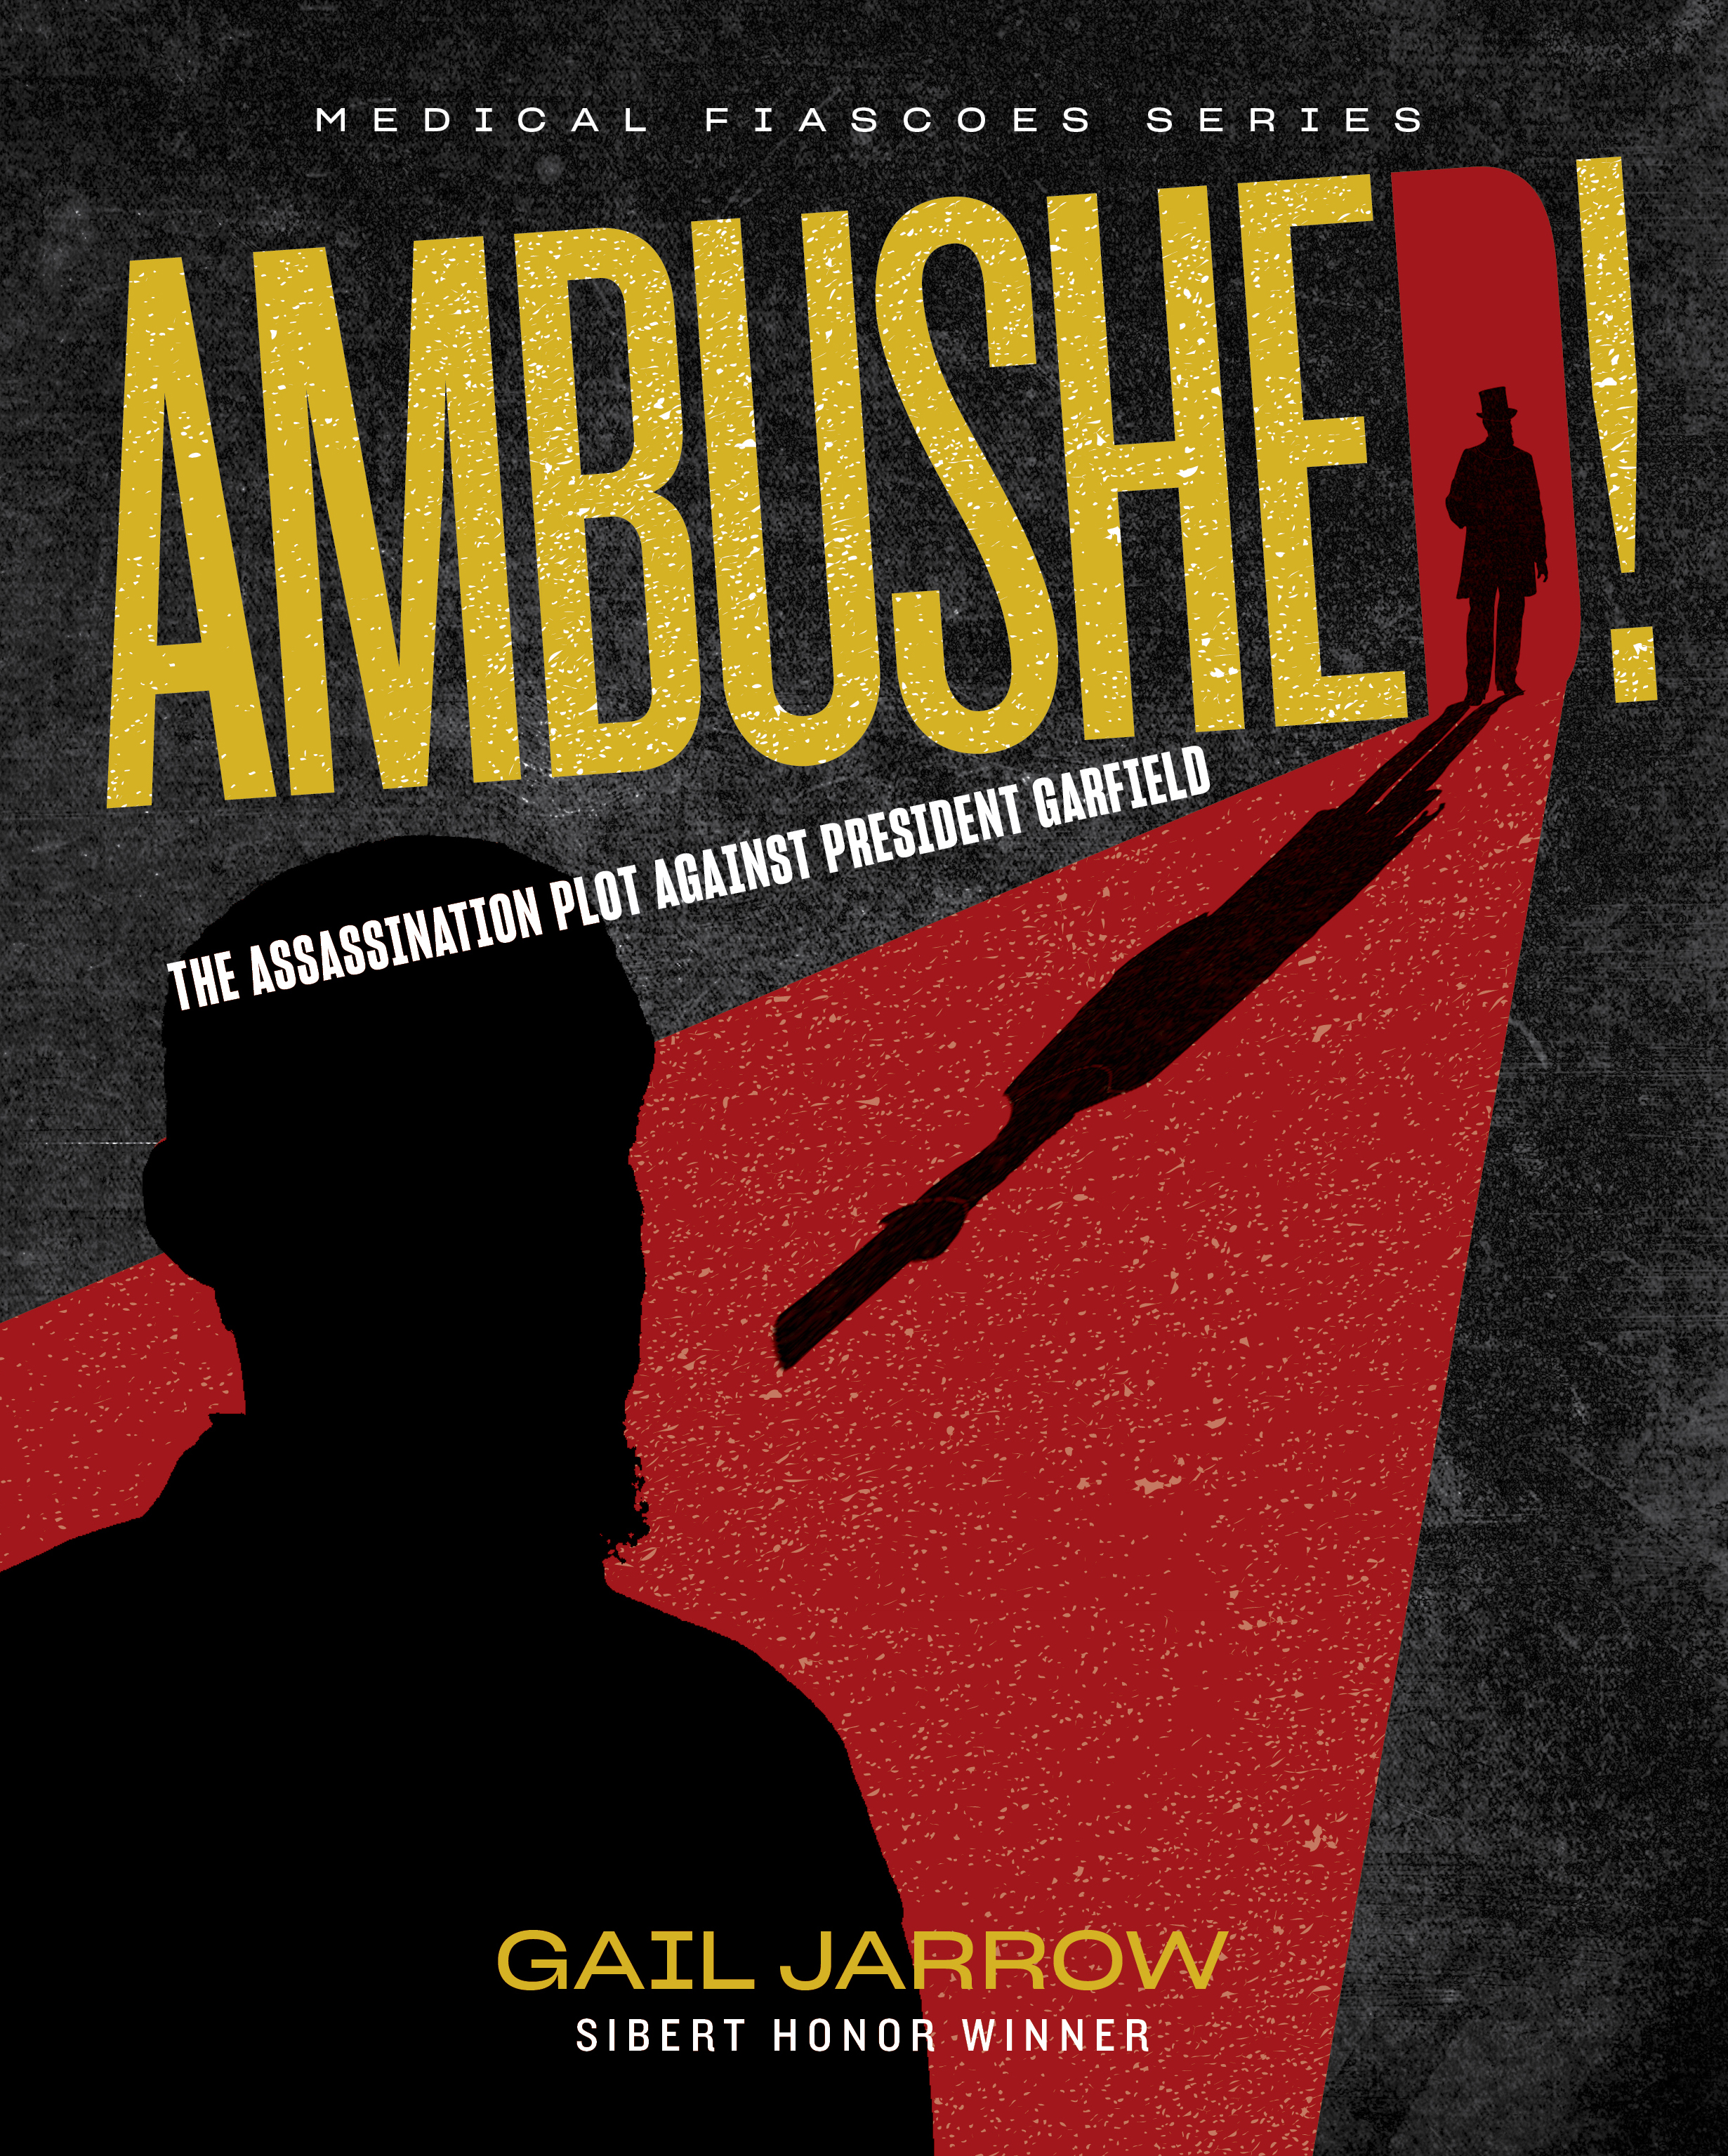 ASSASSINATIONS AND DIRTY HANDS – AMBUSHED!: The Assassination Plot Against President Garfield by Gail Jarrow